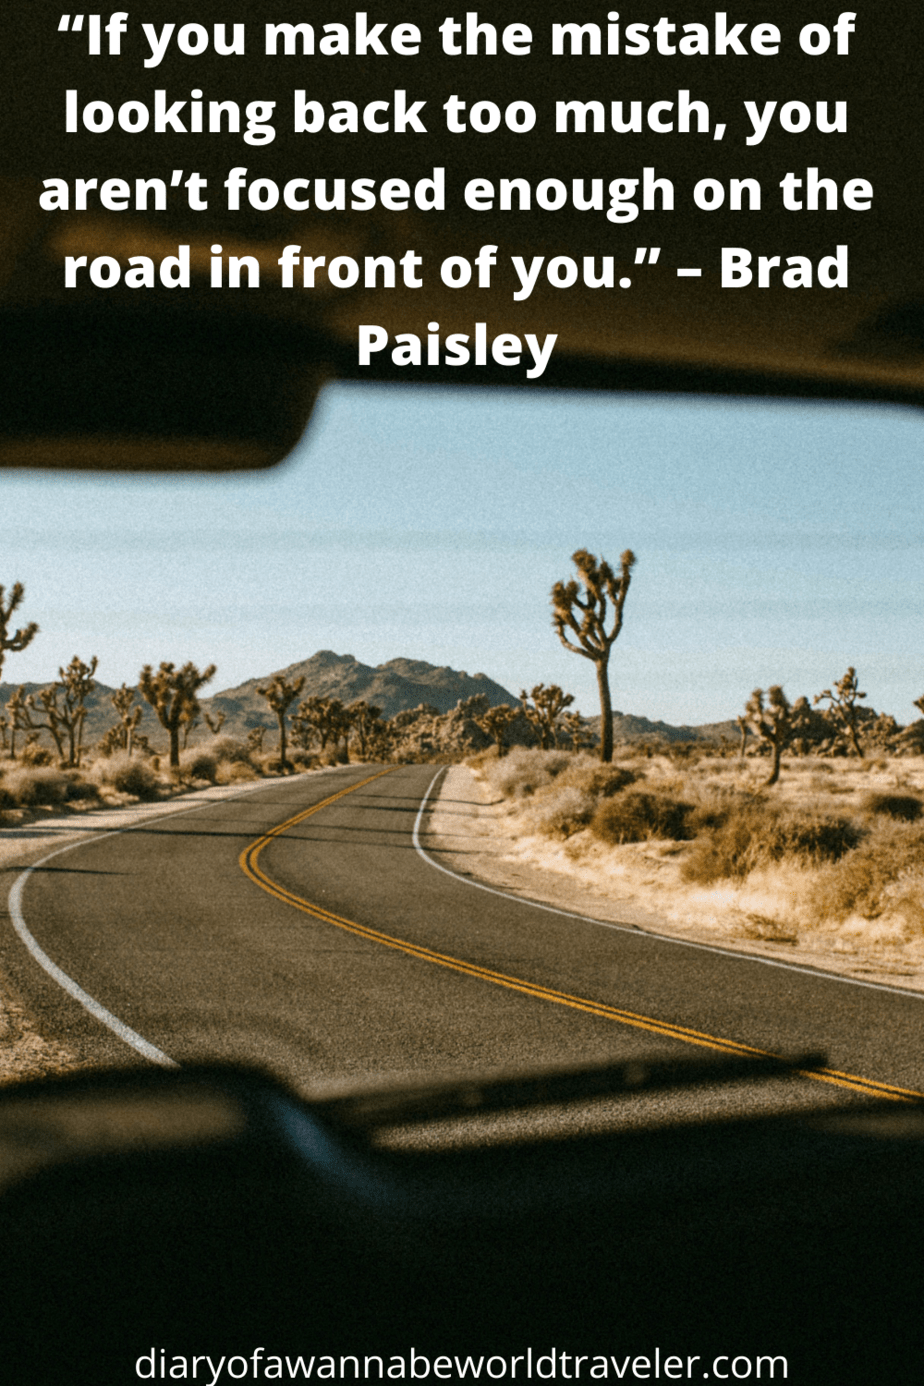 15 Road Trip Quotes to Inspire Your Next Trip